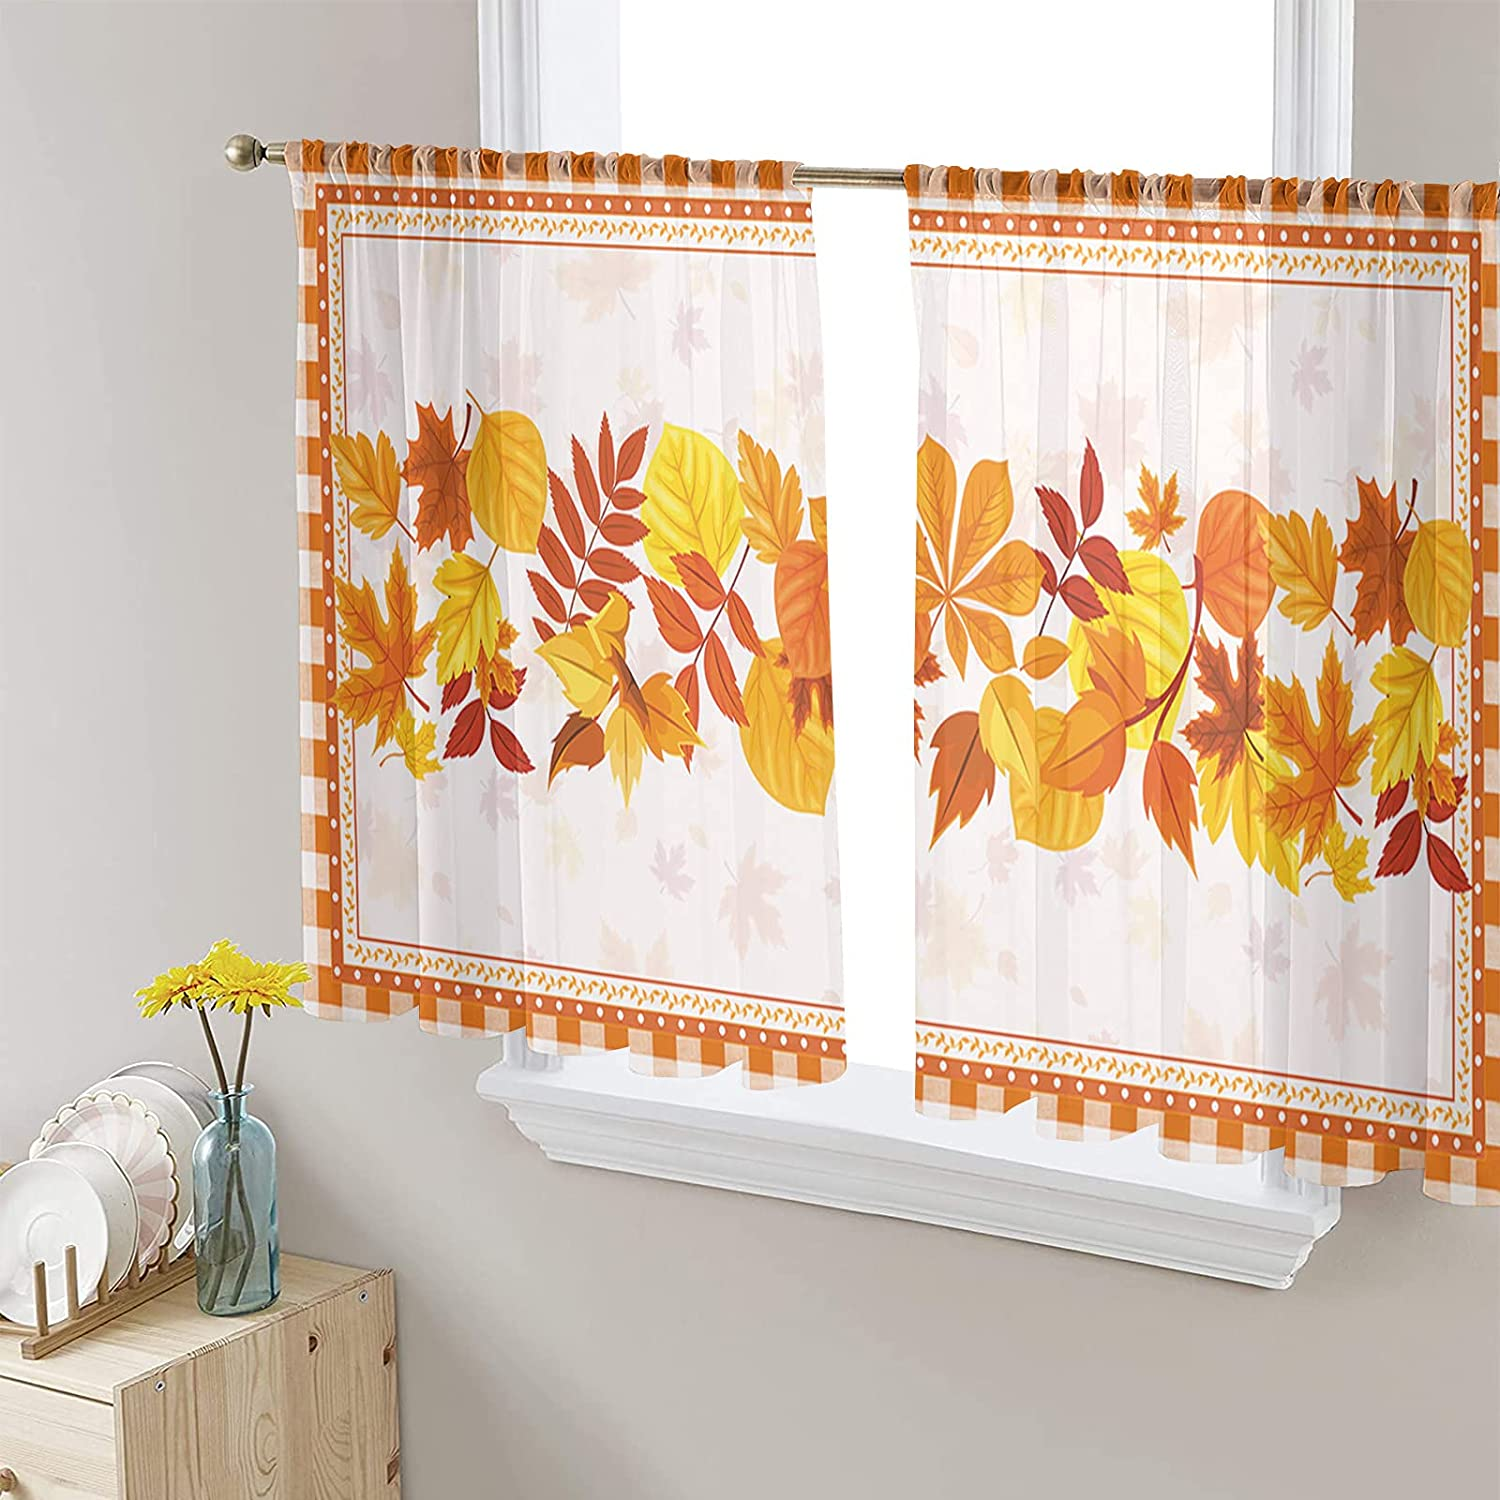 2 store Panels Semi Sheer Voile Curtains Thanksgiving Lea Recommended Autumn Maple